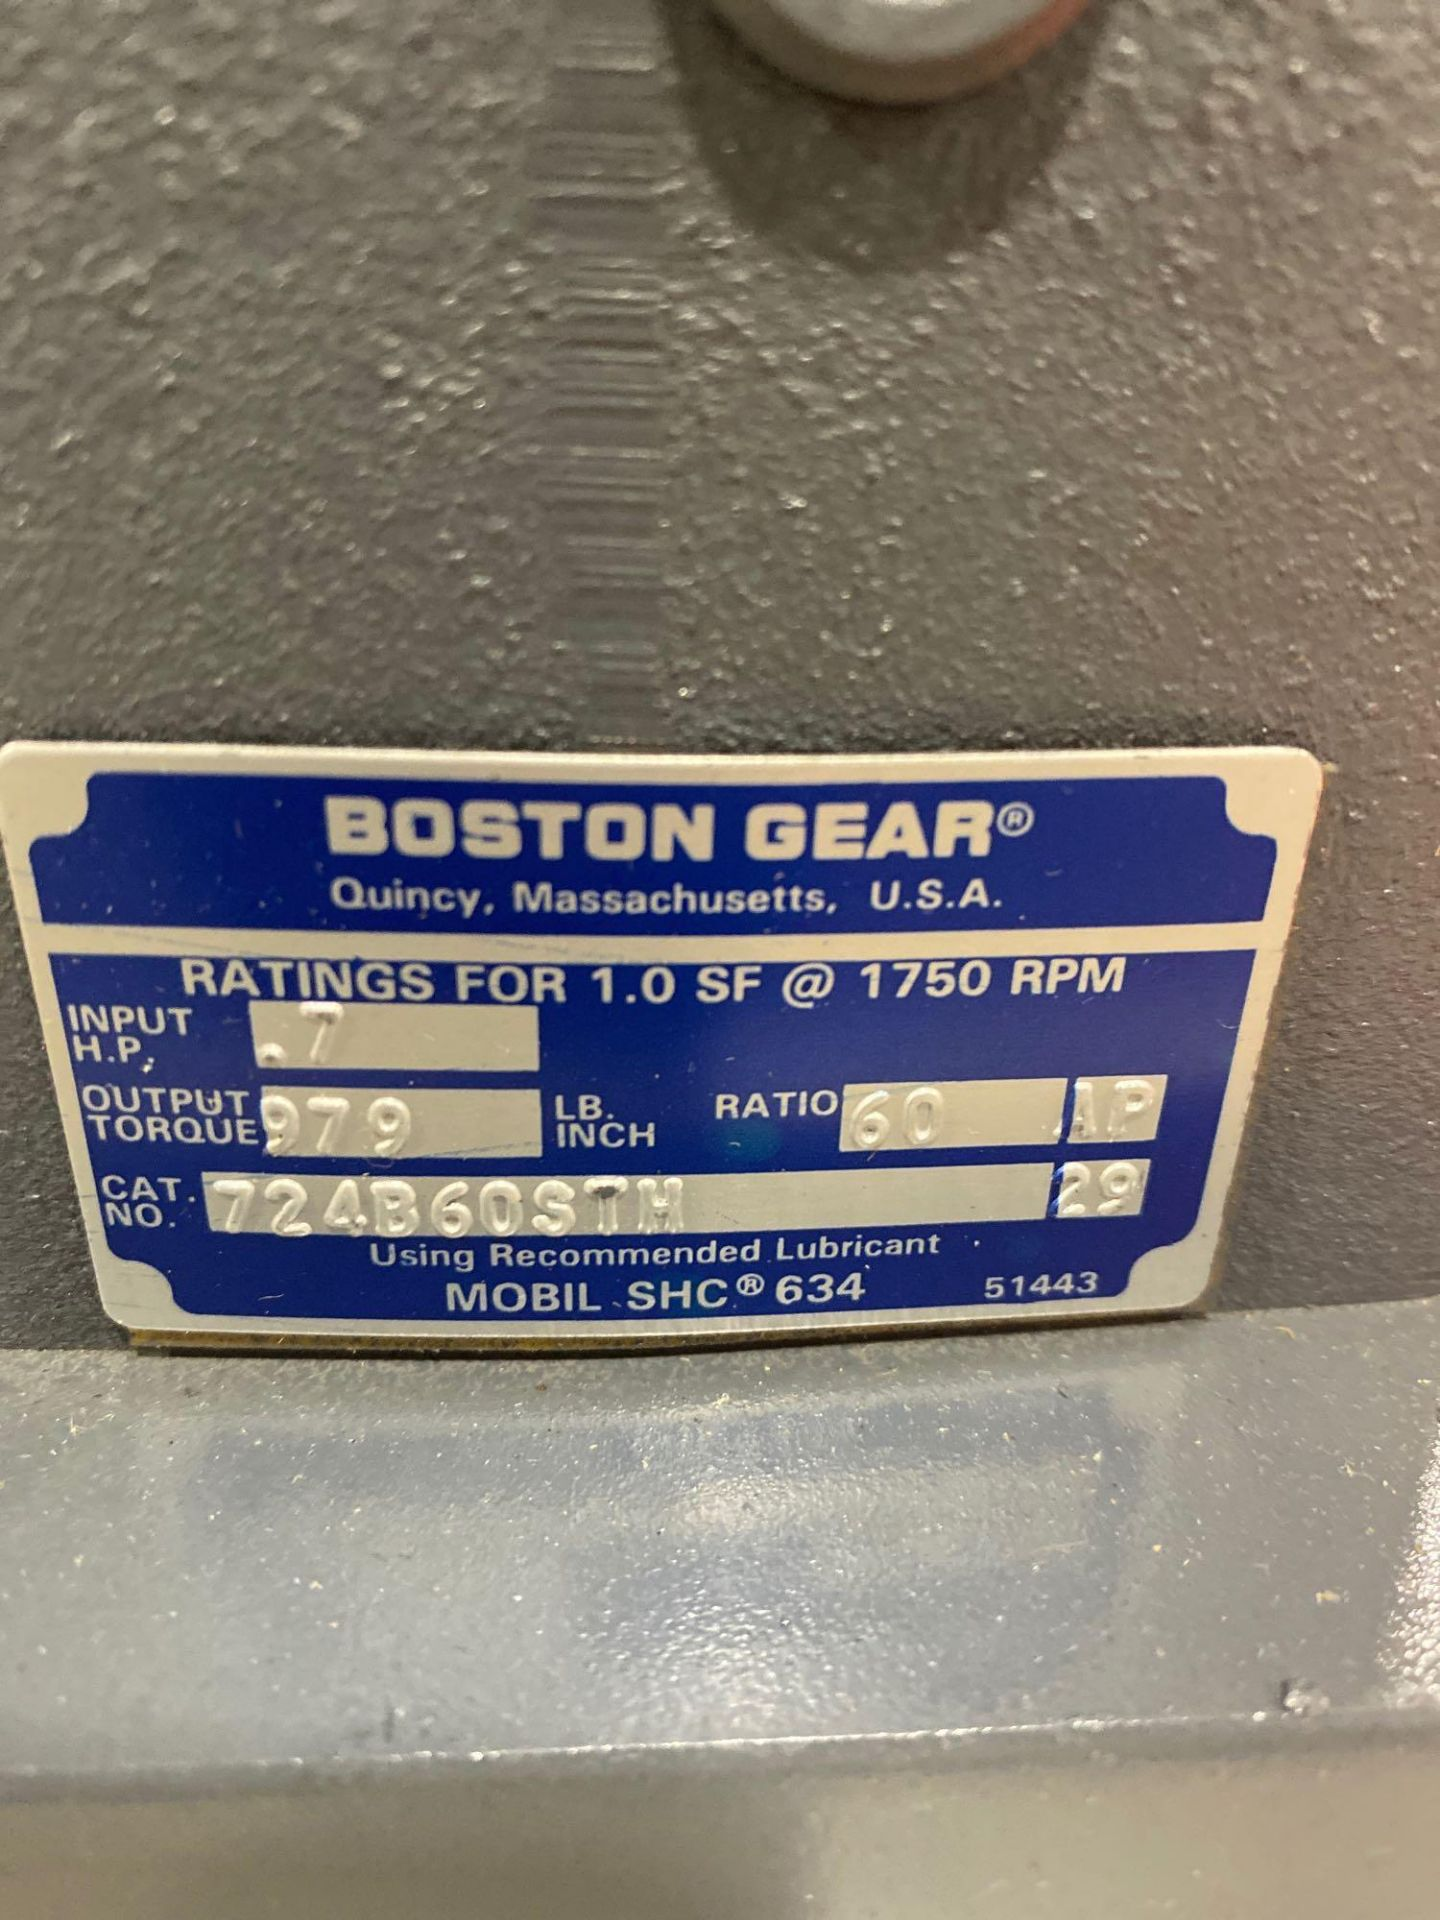 Lot 2 - Boston Gear catalog 724B-60ST-H gear box. New in box as pictured.